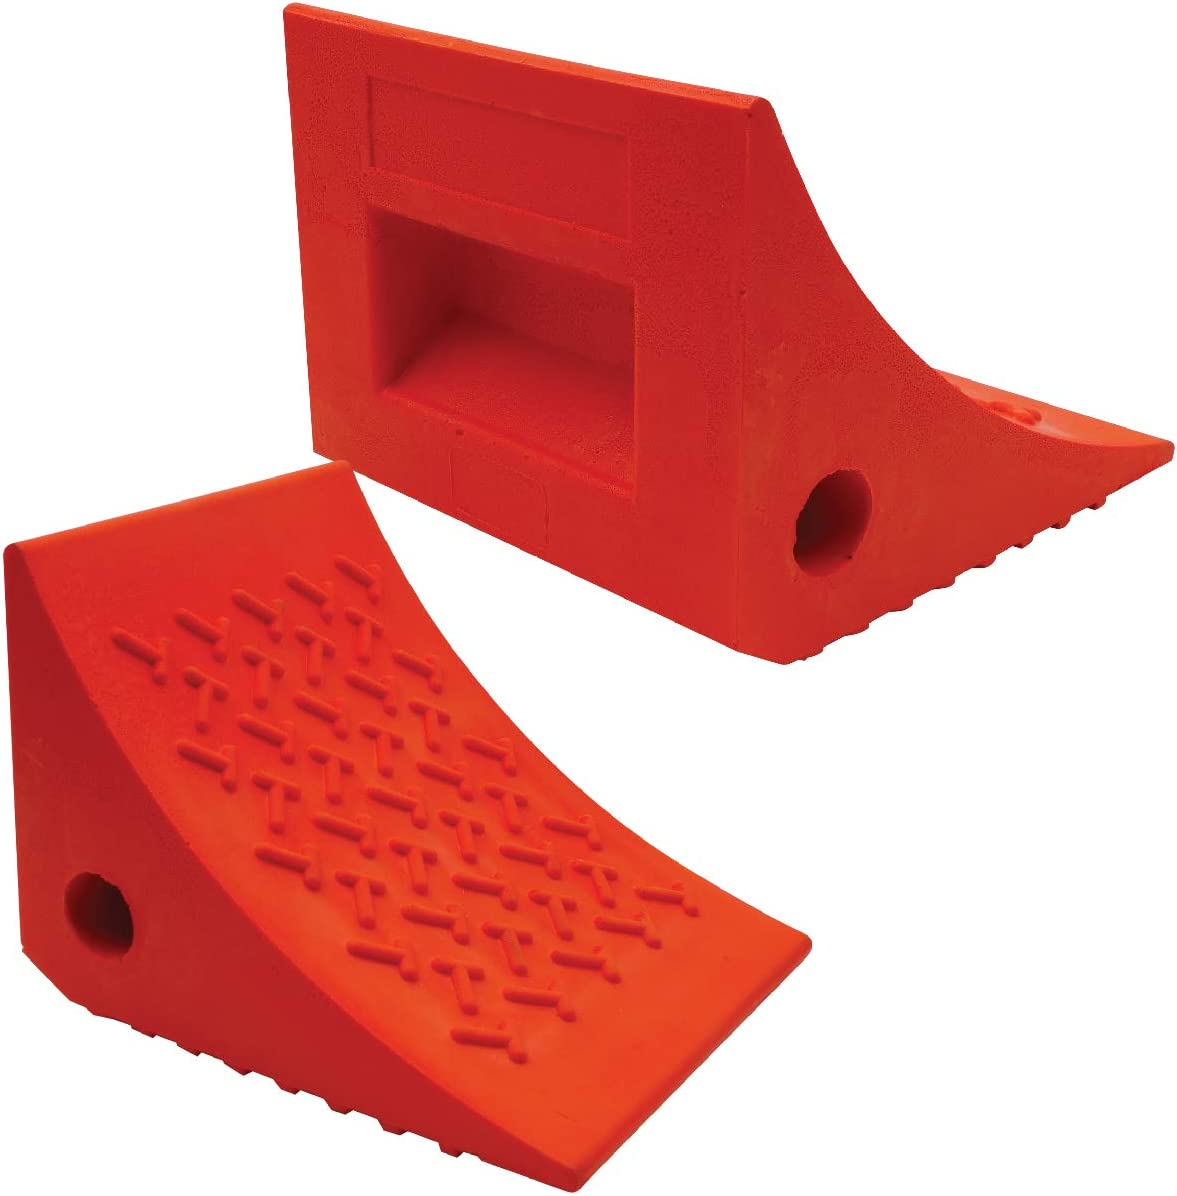 SECURITYMAN 2 Pack Wheel Chocks - Constructed of Heavy Duty Solid Rubber for 20,000 lbs of RV, Trailer, Truck, Camper - Perfect on All Surfaces and in All Weather - Orange: Automotive